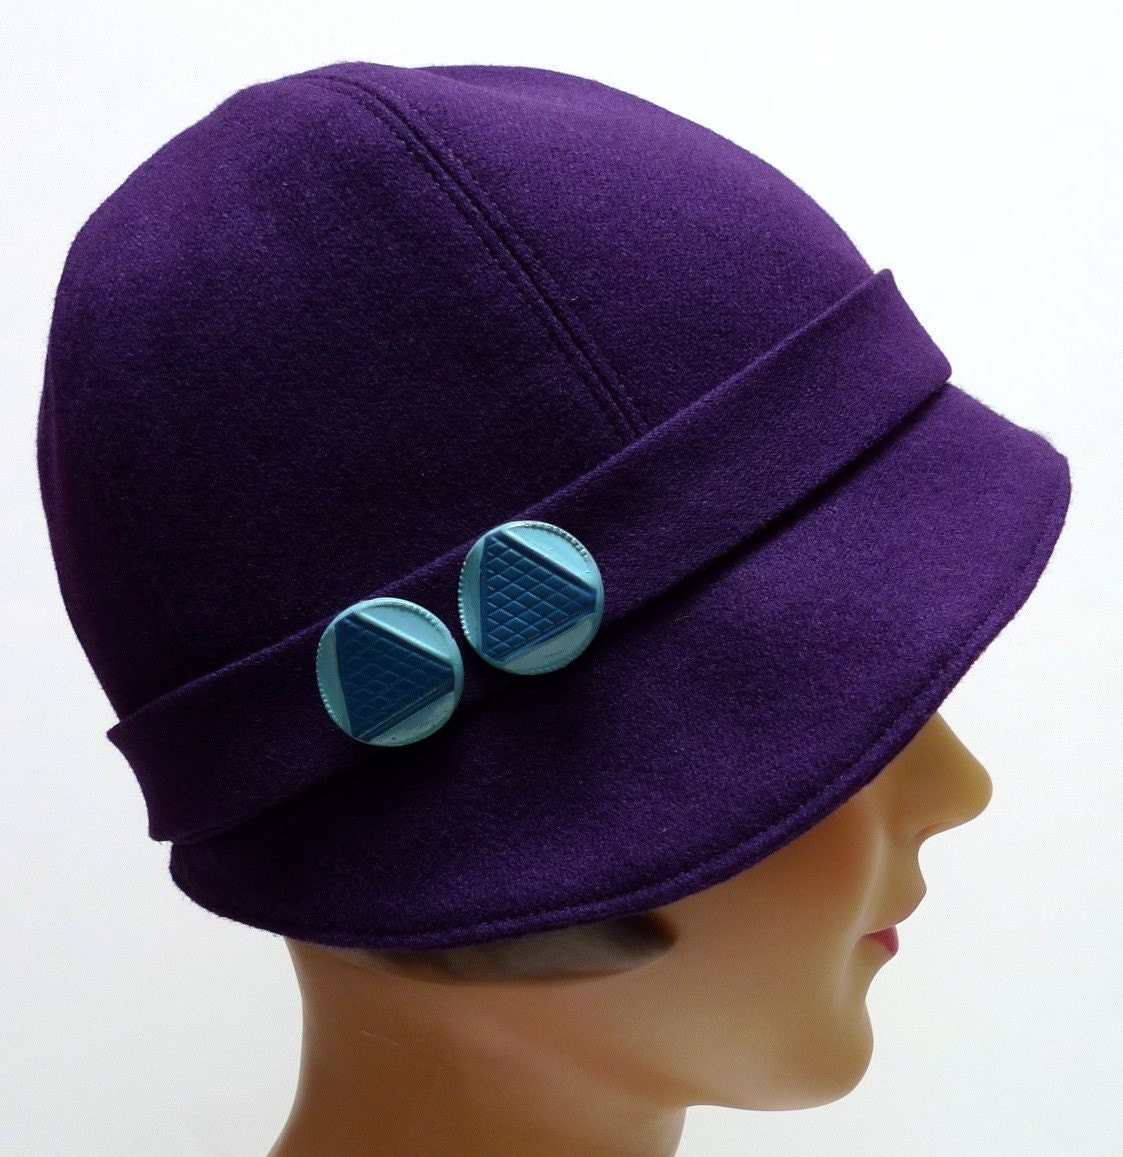 1920s Cloche Hat in Vintage Purple Wool with Blue Art Deco Buttons - SALE